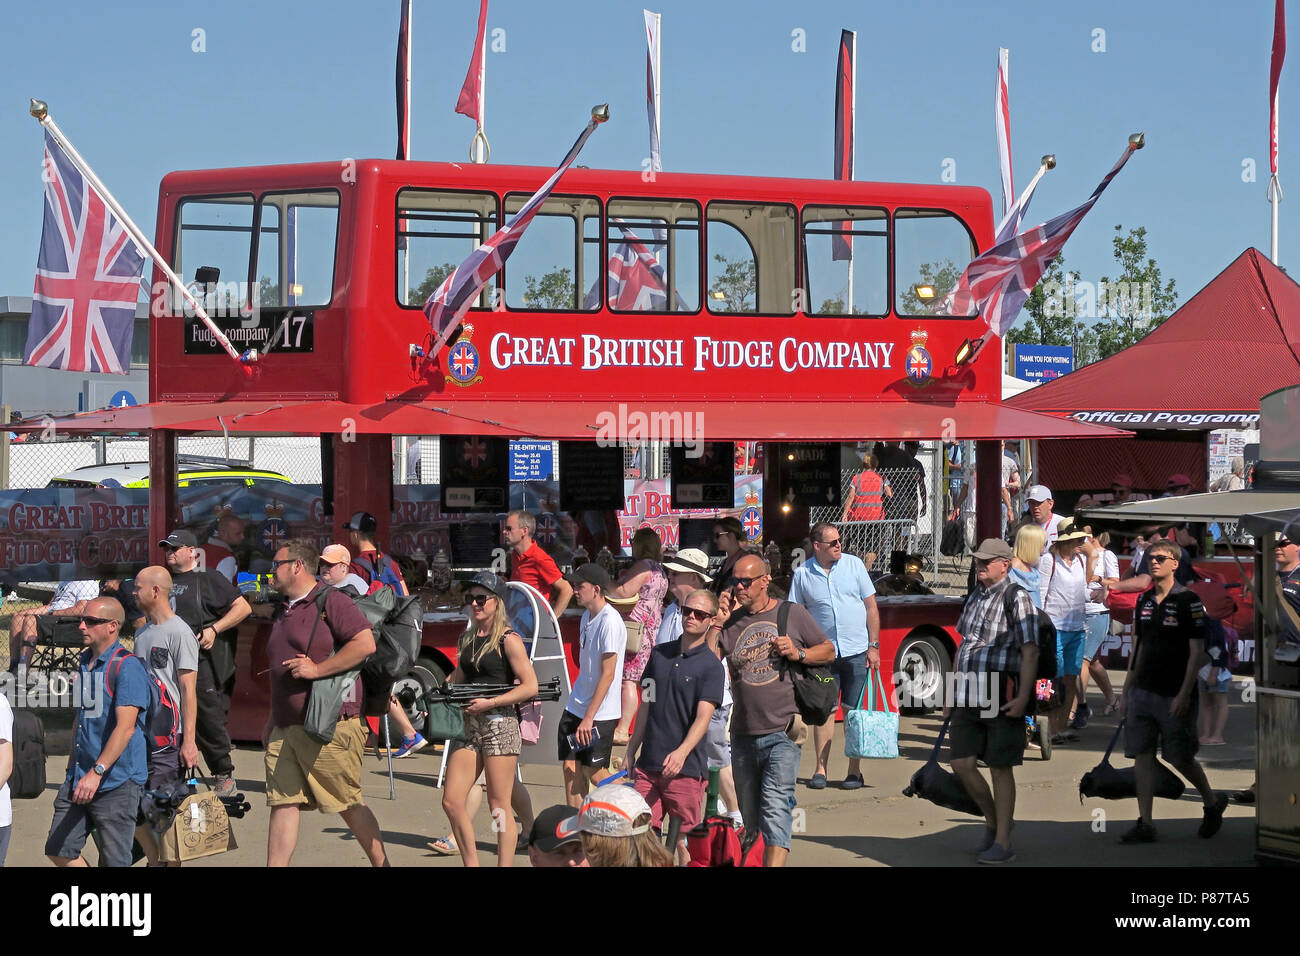 The Great British Fudge Company red bus sweet shop, Silverstone, England, UK - Stock Image